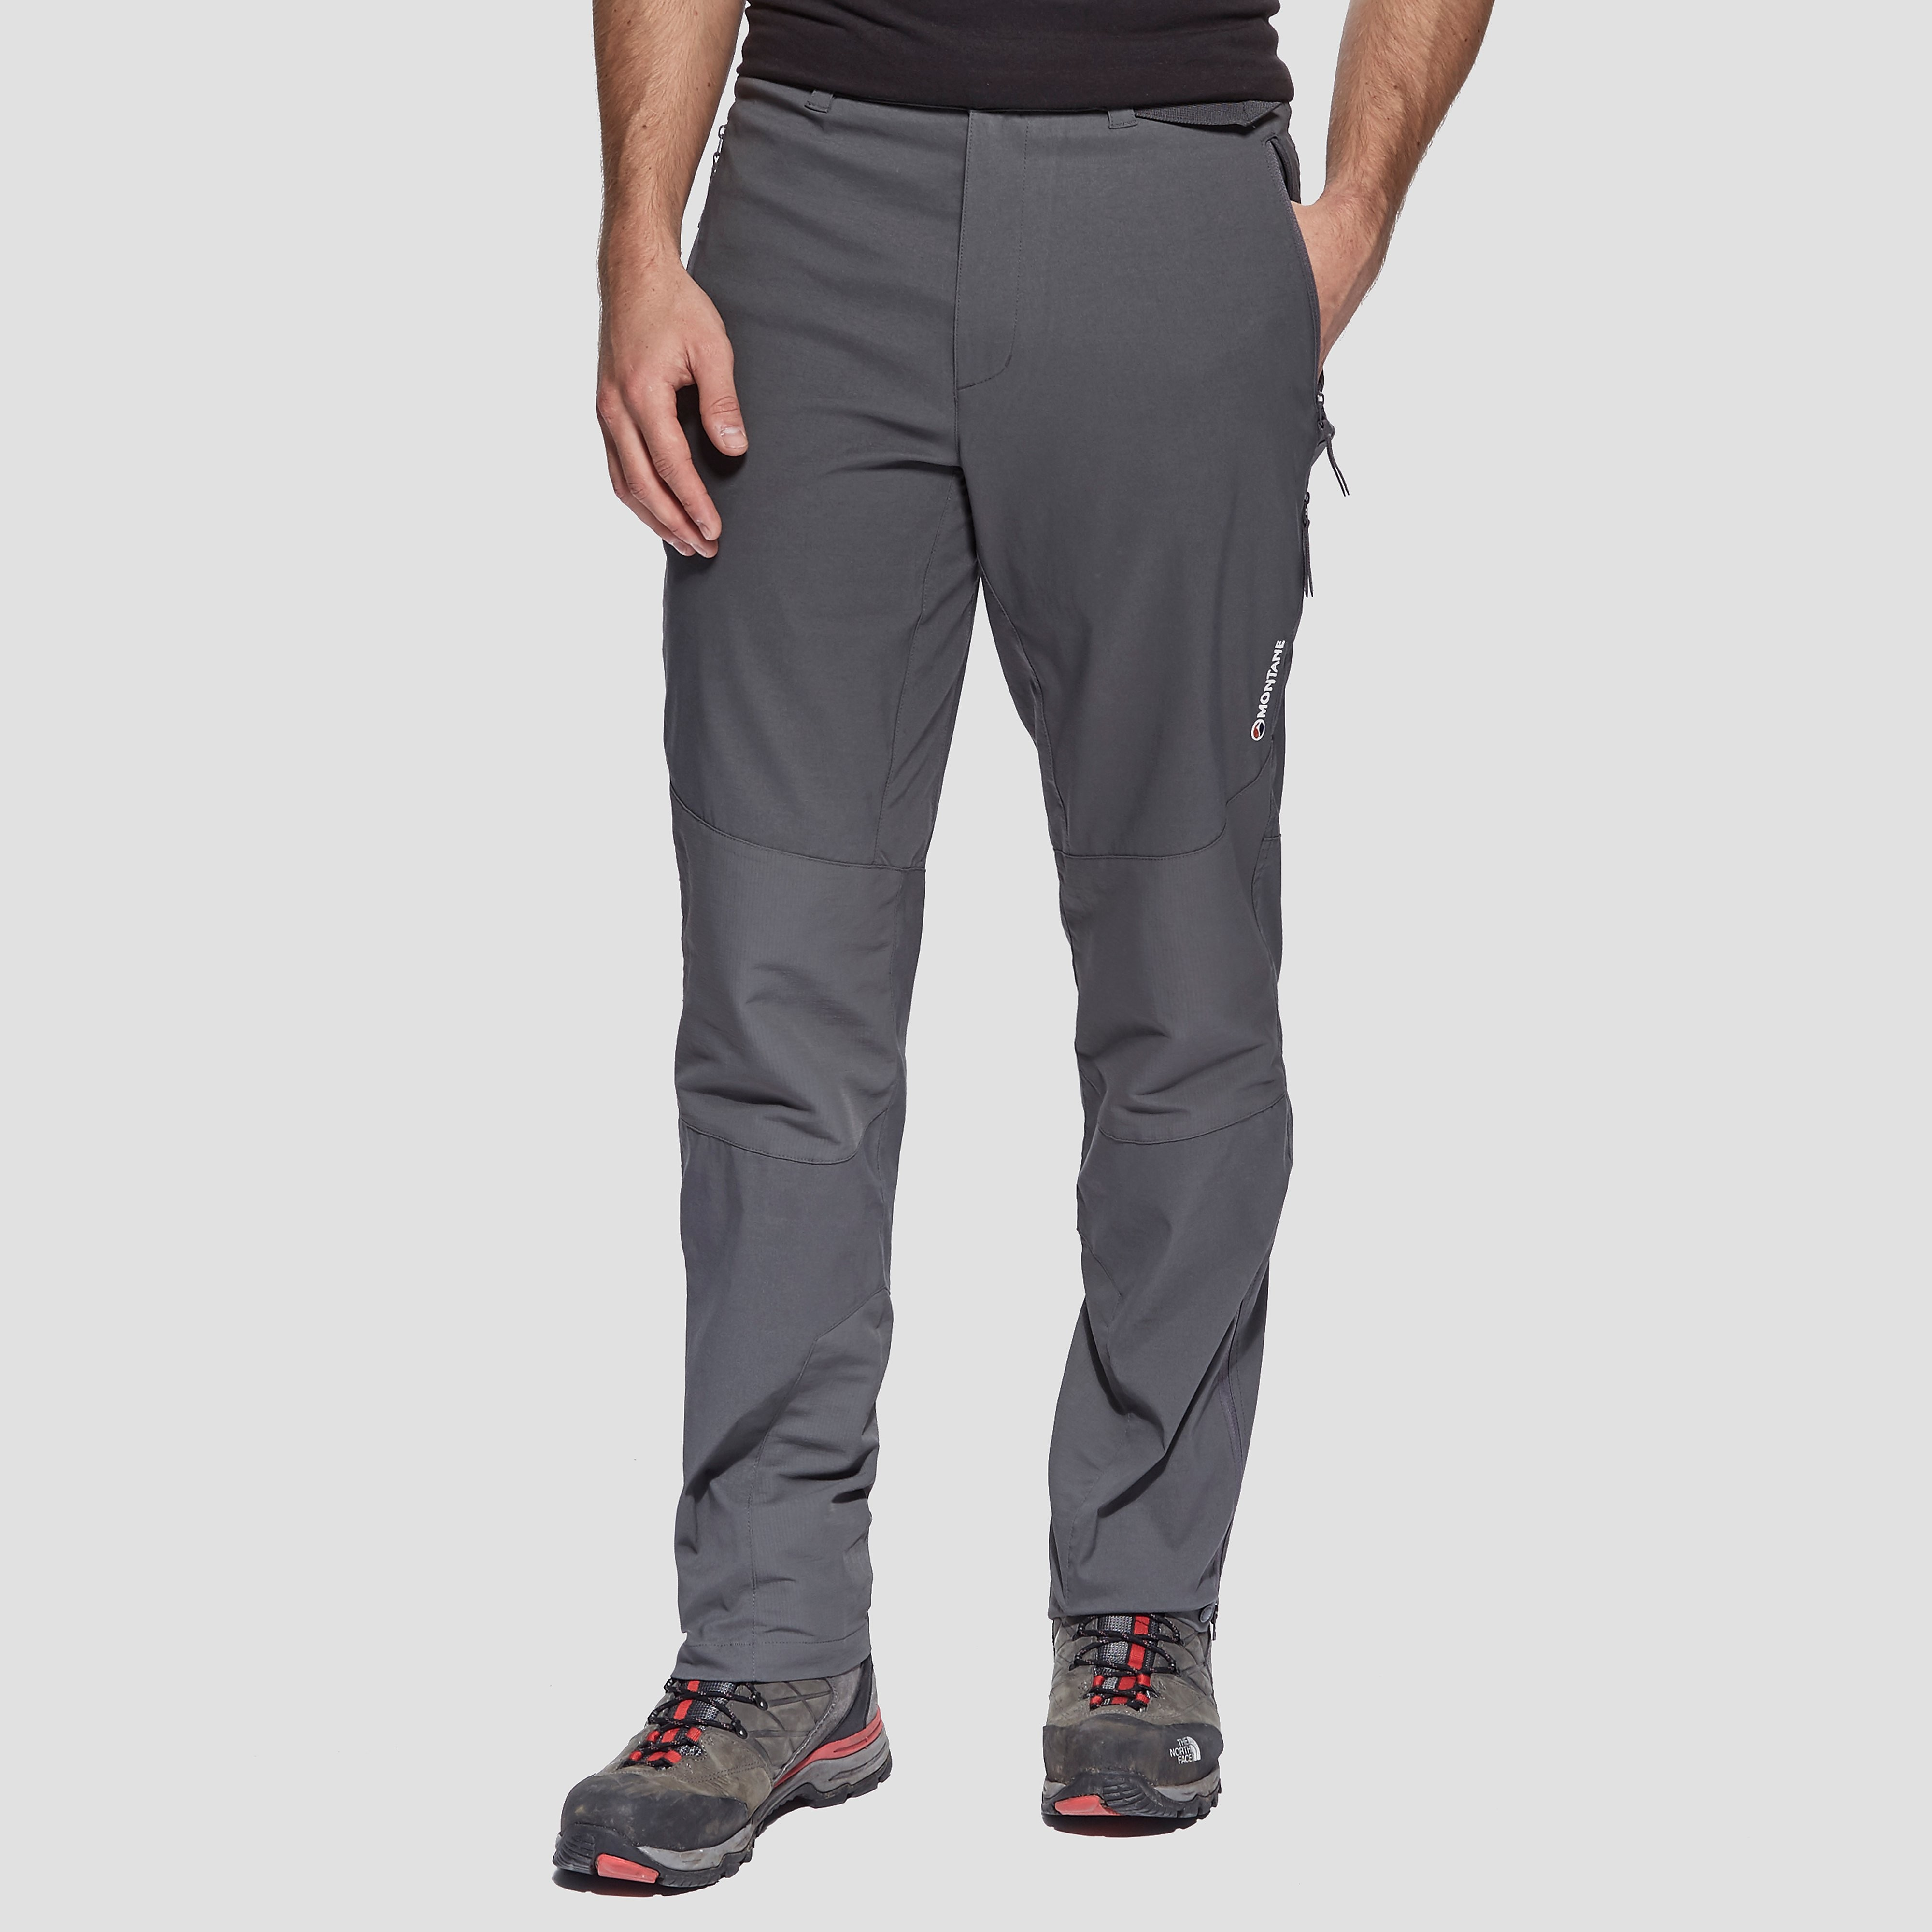 Montane Terra Men's Stretch Pants